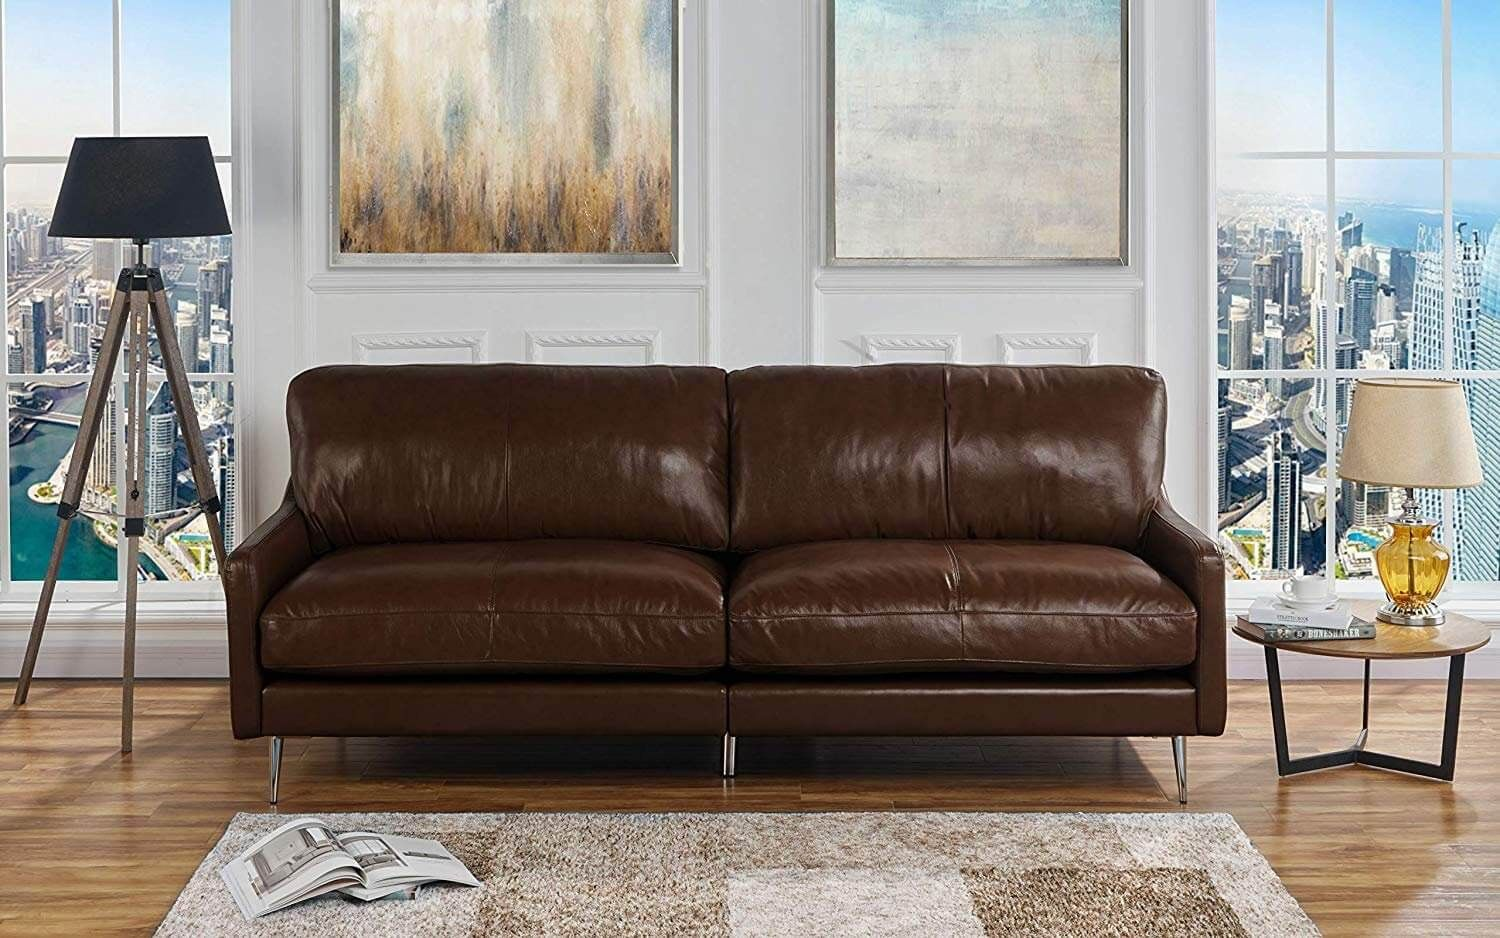 Embrace Your Home With Best Leather Sofa Brands Living Room Leather Leather Sofa Living Room Best Leather Sofa